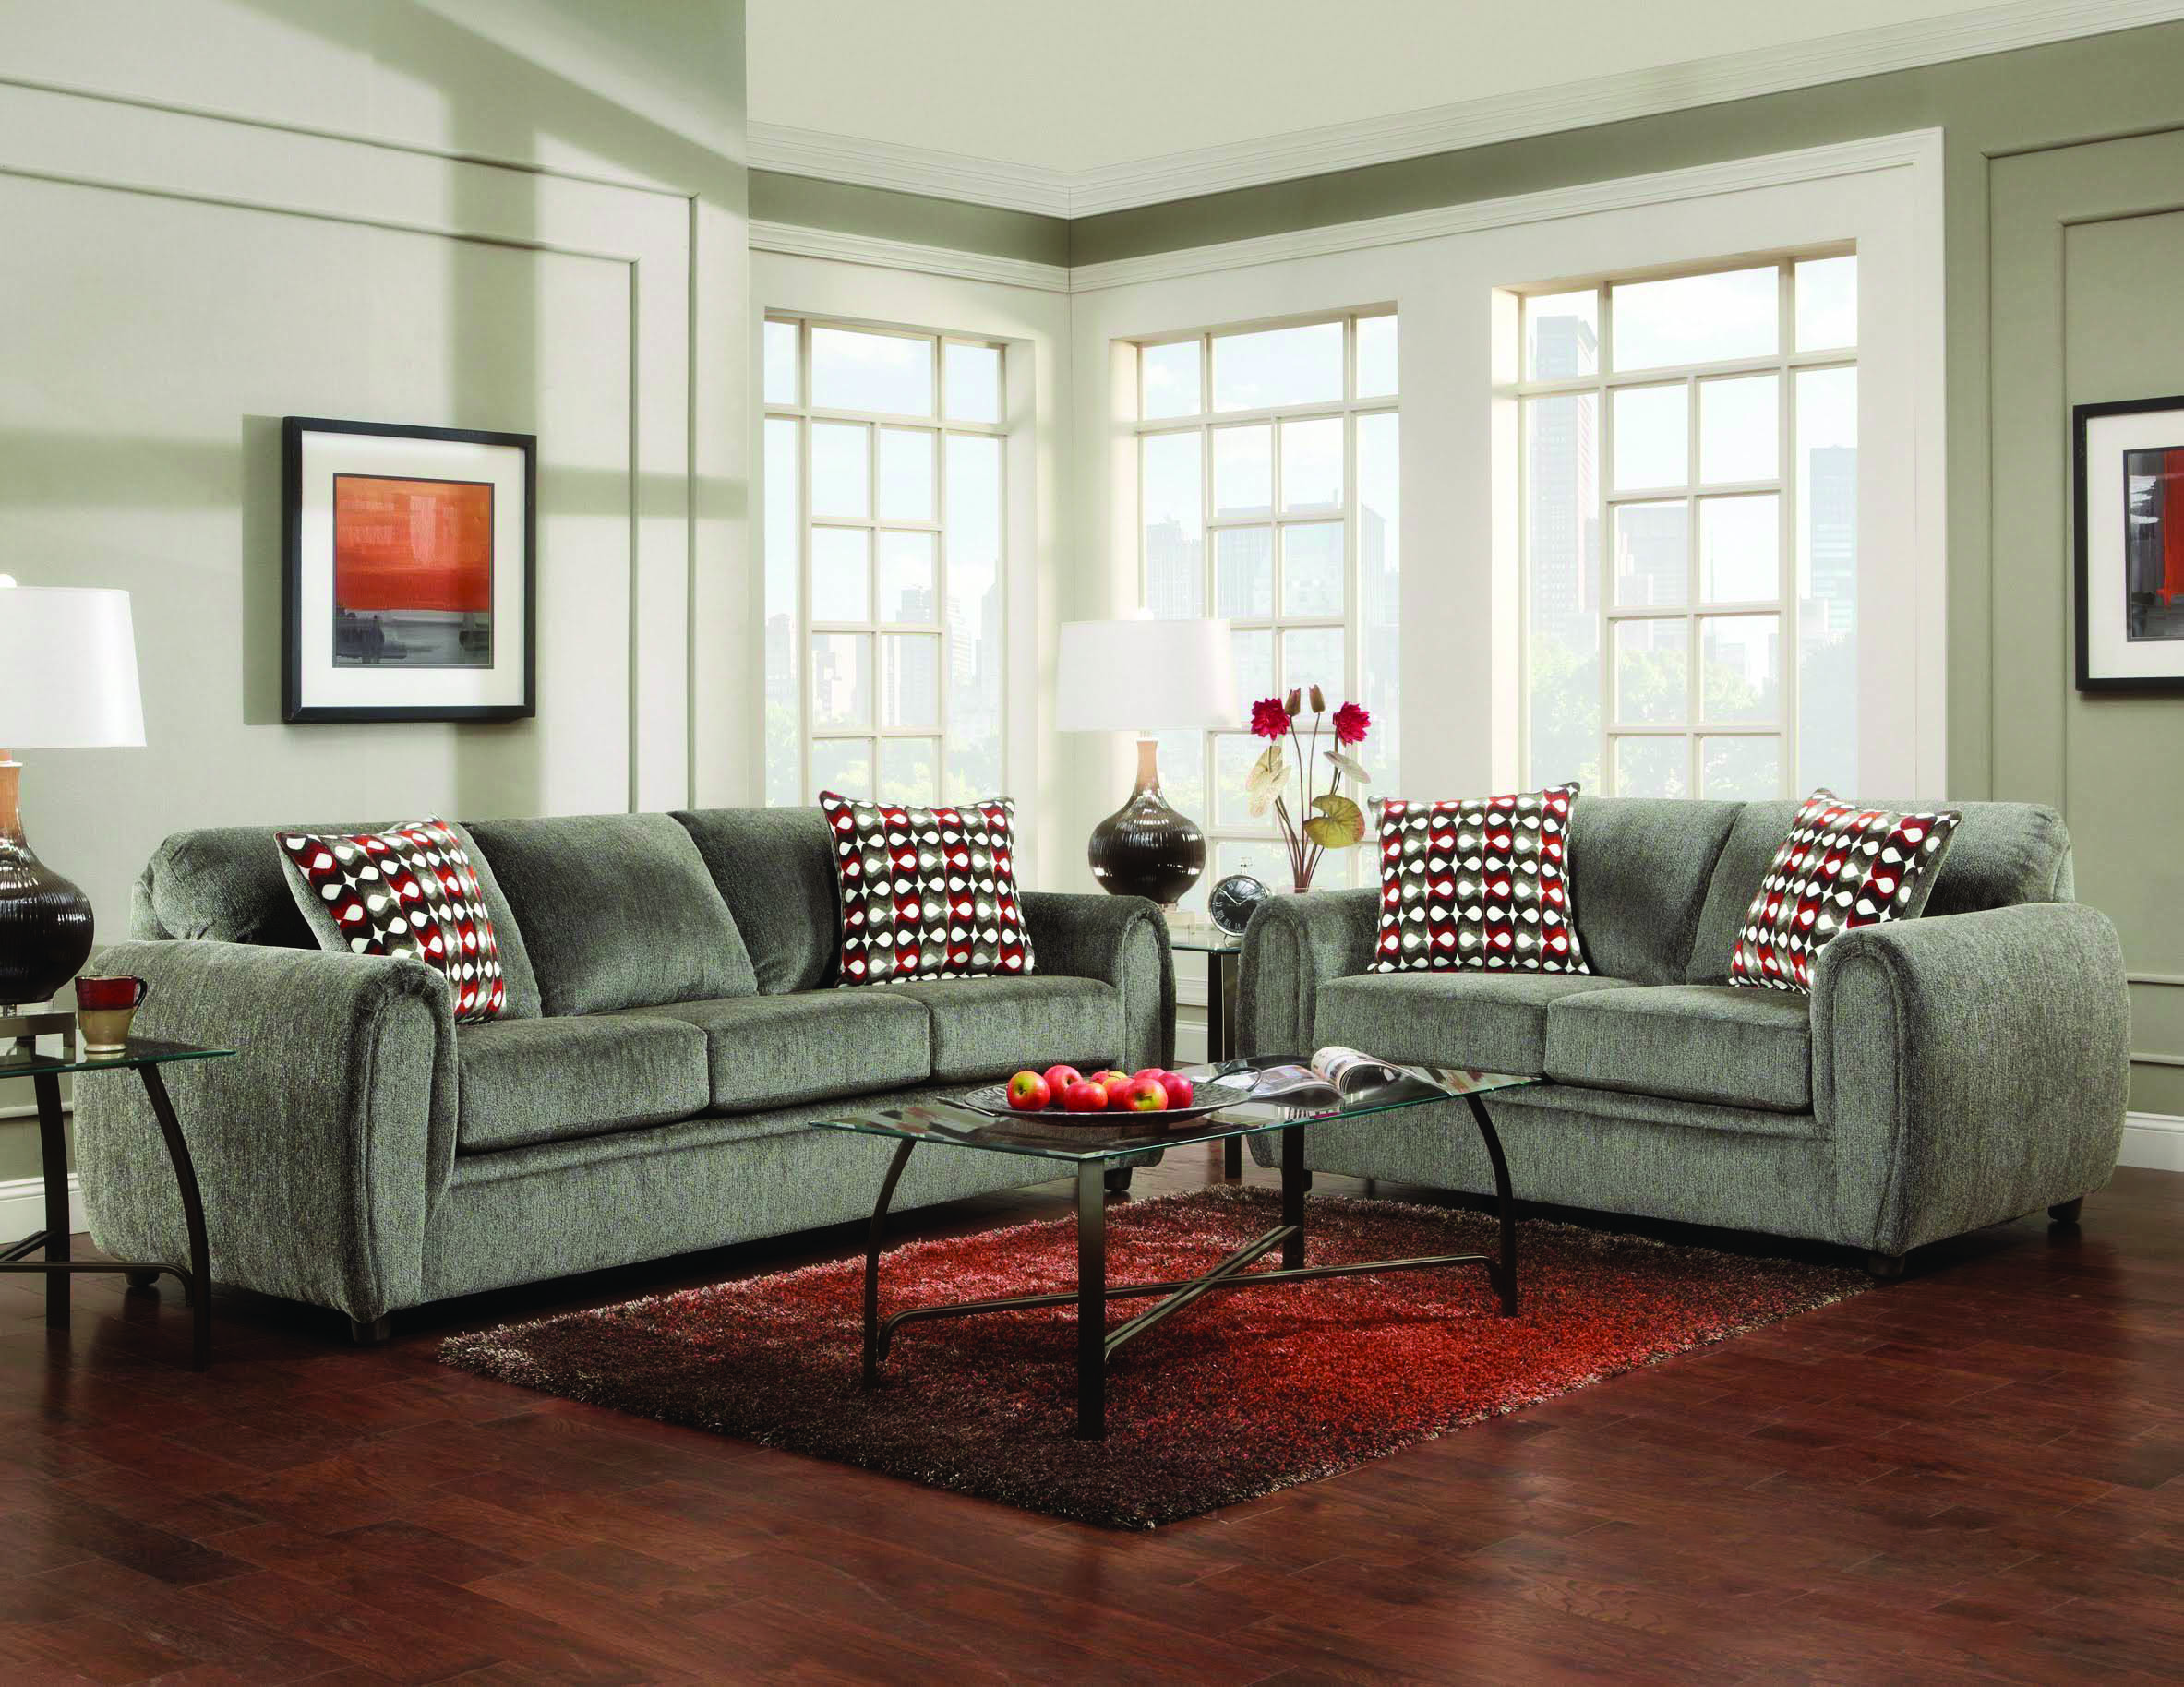 Cheap living room furniture sets photo gallery of for Cheap living room furniture sets uk